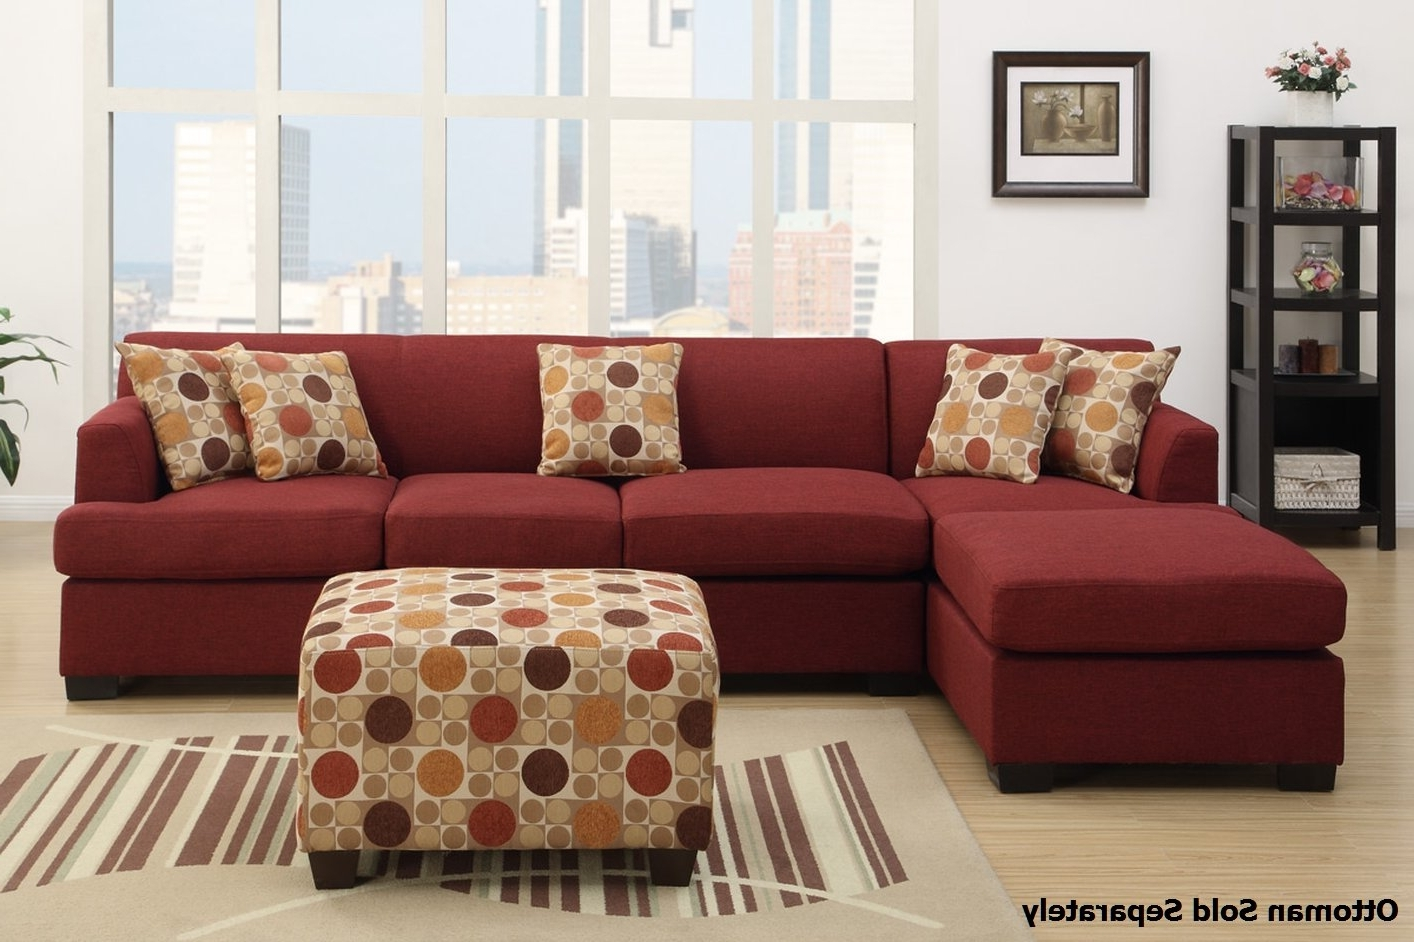 Widely Used Montreal Sectional Sofas With Montreal Iii Red Fabric Sectional Sofa – Steal A Sofa Furniture (View 20 of 20)